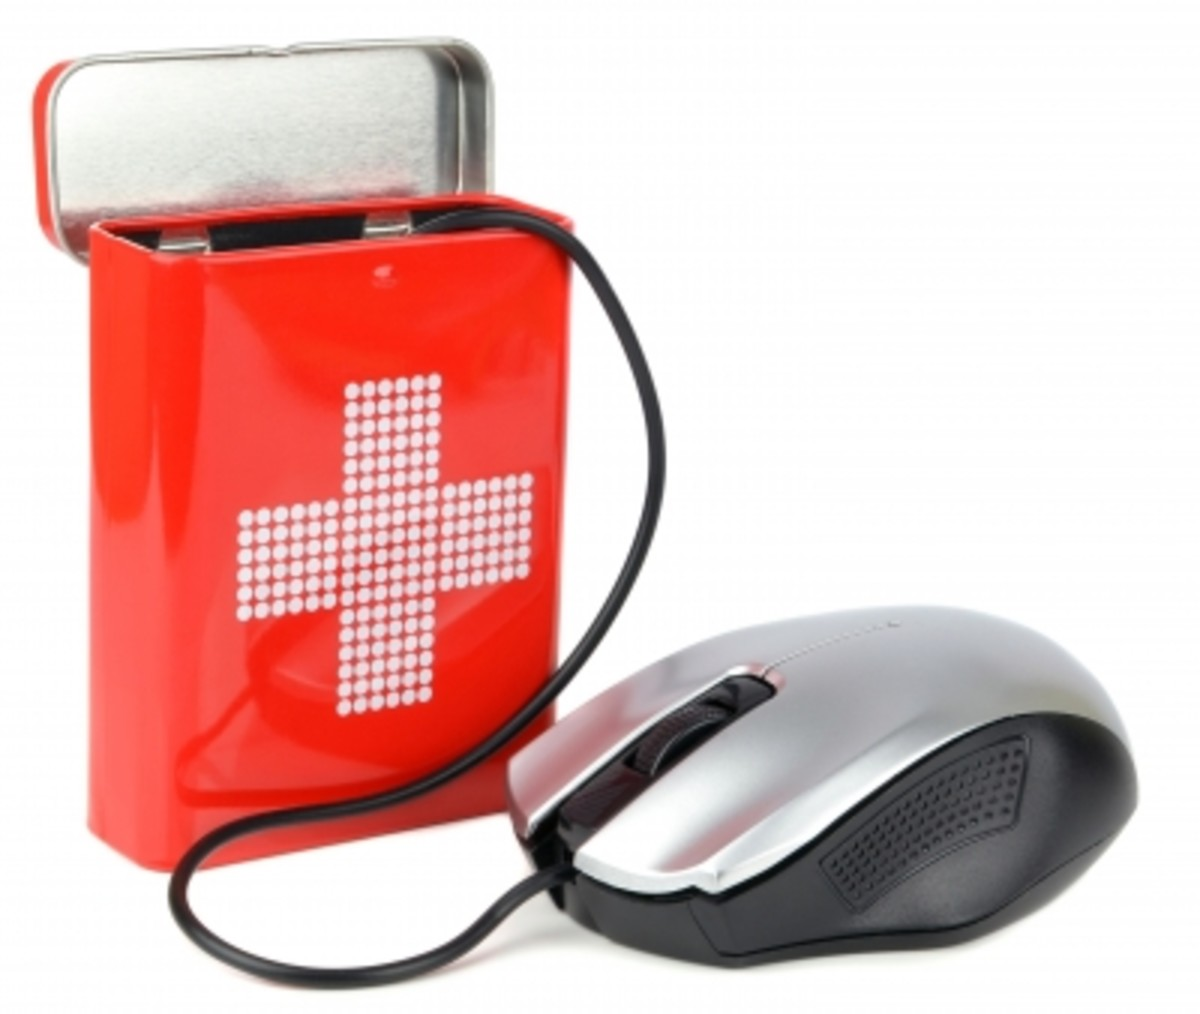 computer-protection-and-antivirus